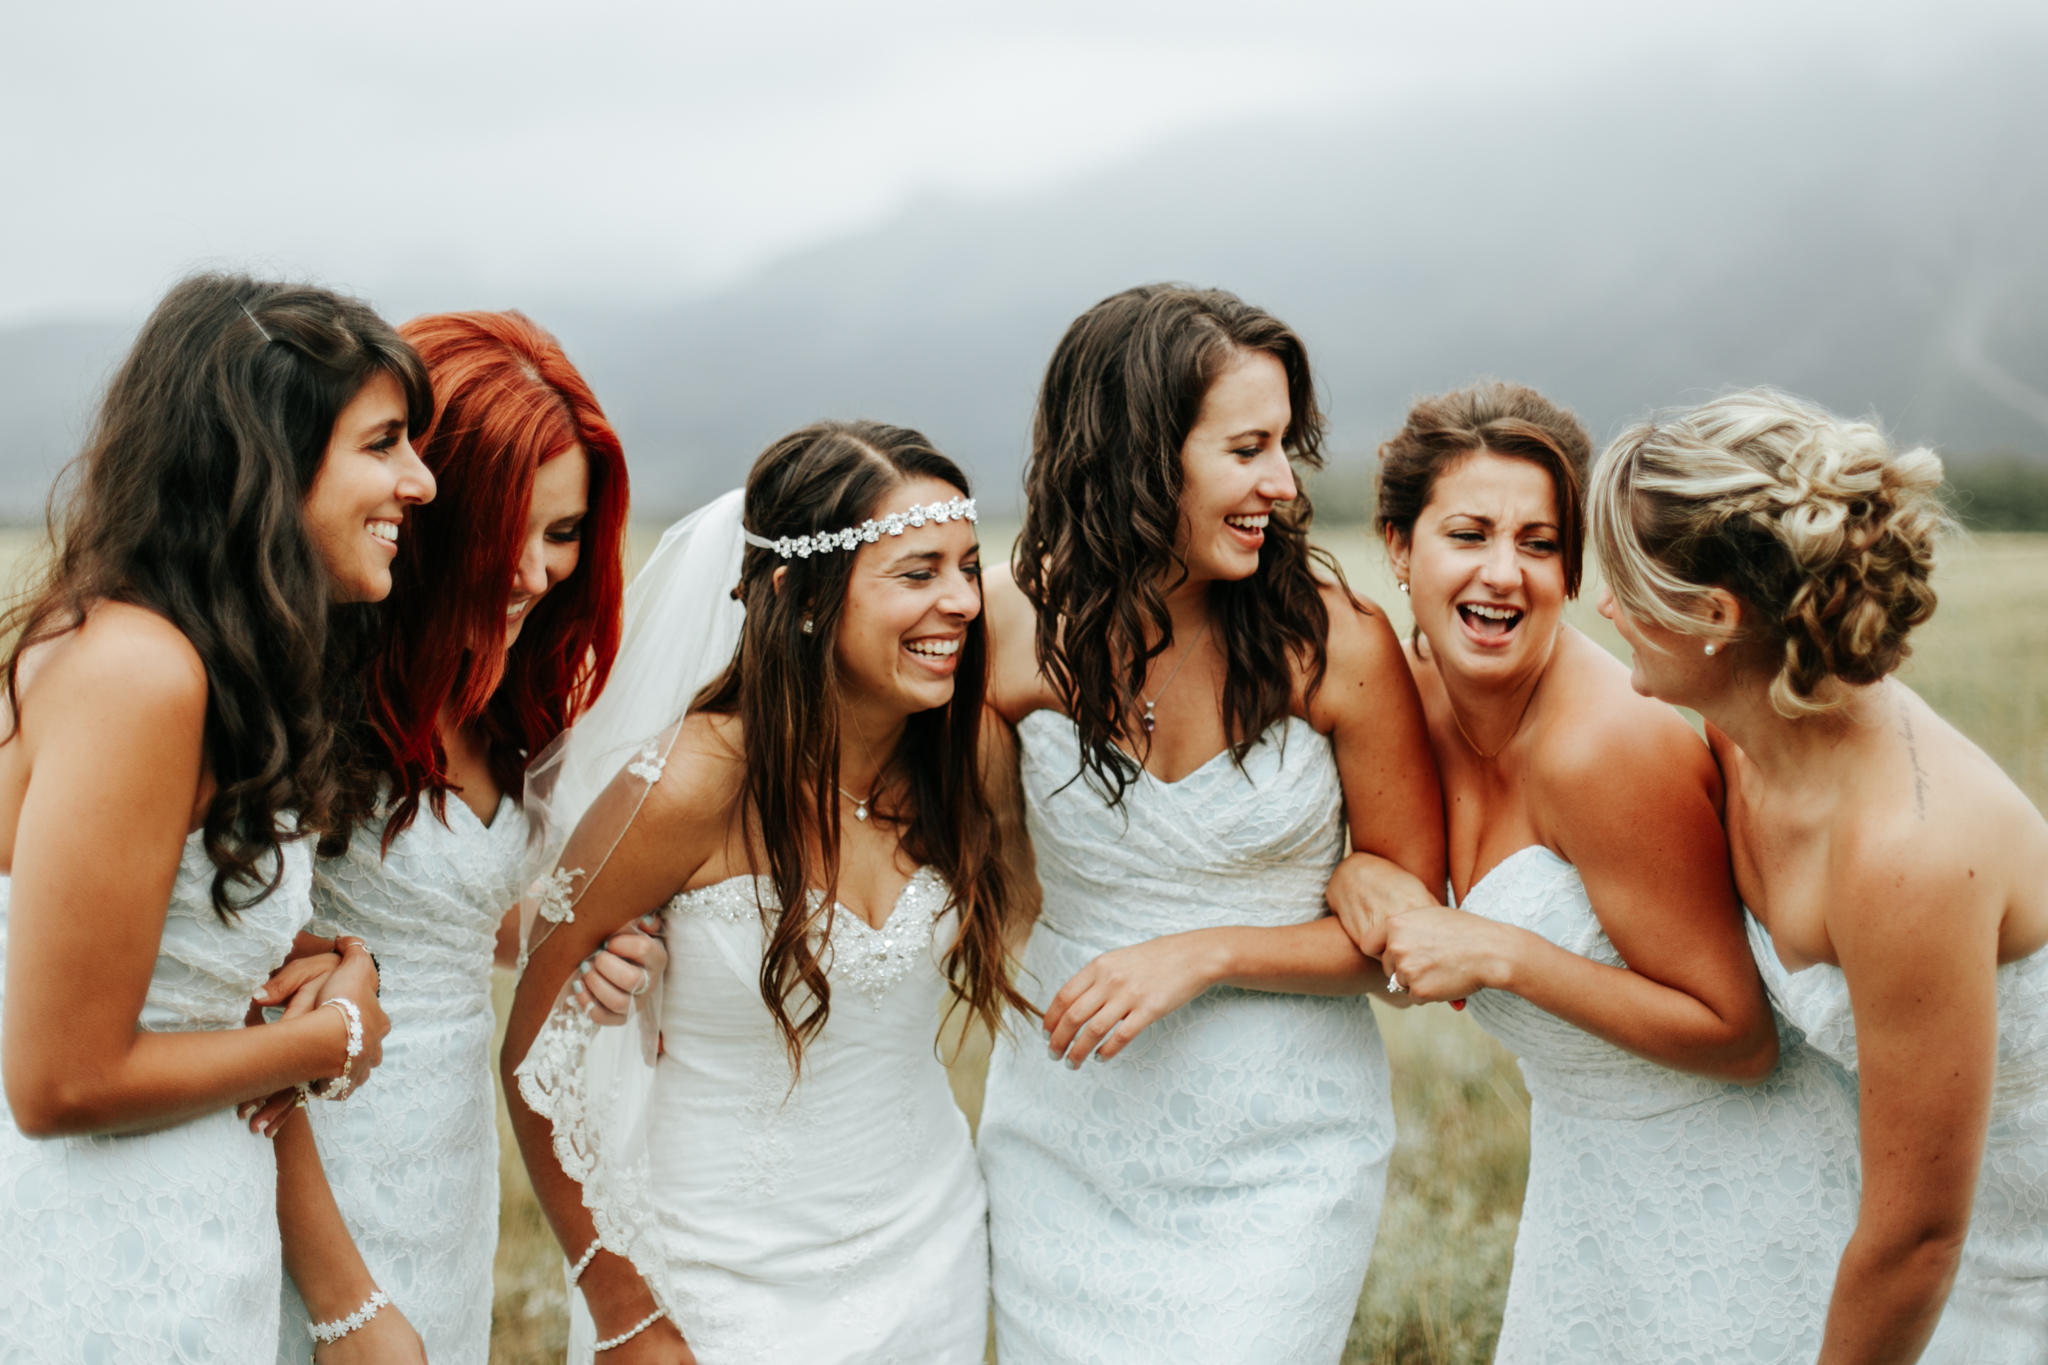 lethbridge-wedding-photographer-love-and-be-loved-photography-waterton-lakes-mountain-picture-image-photo-20.jpg